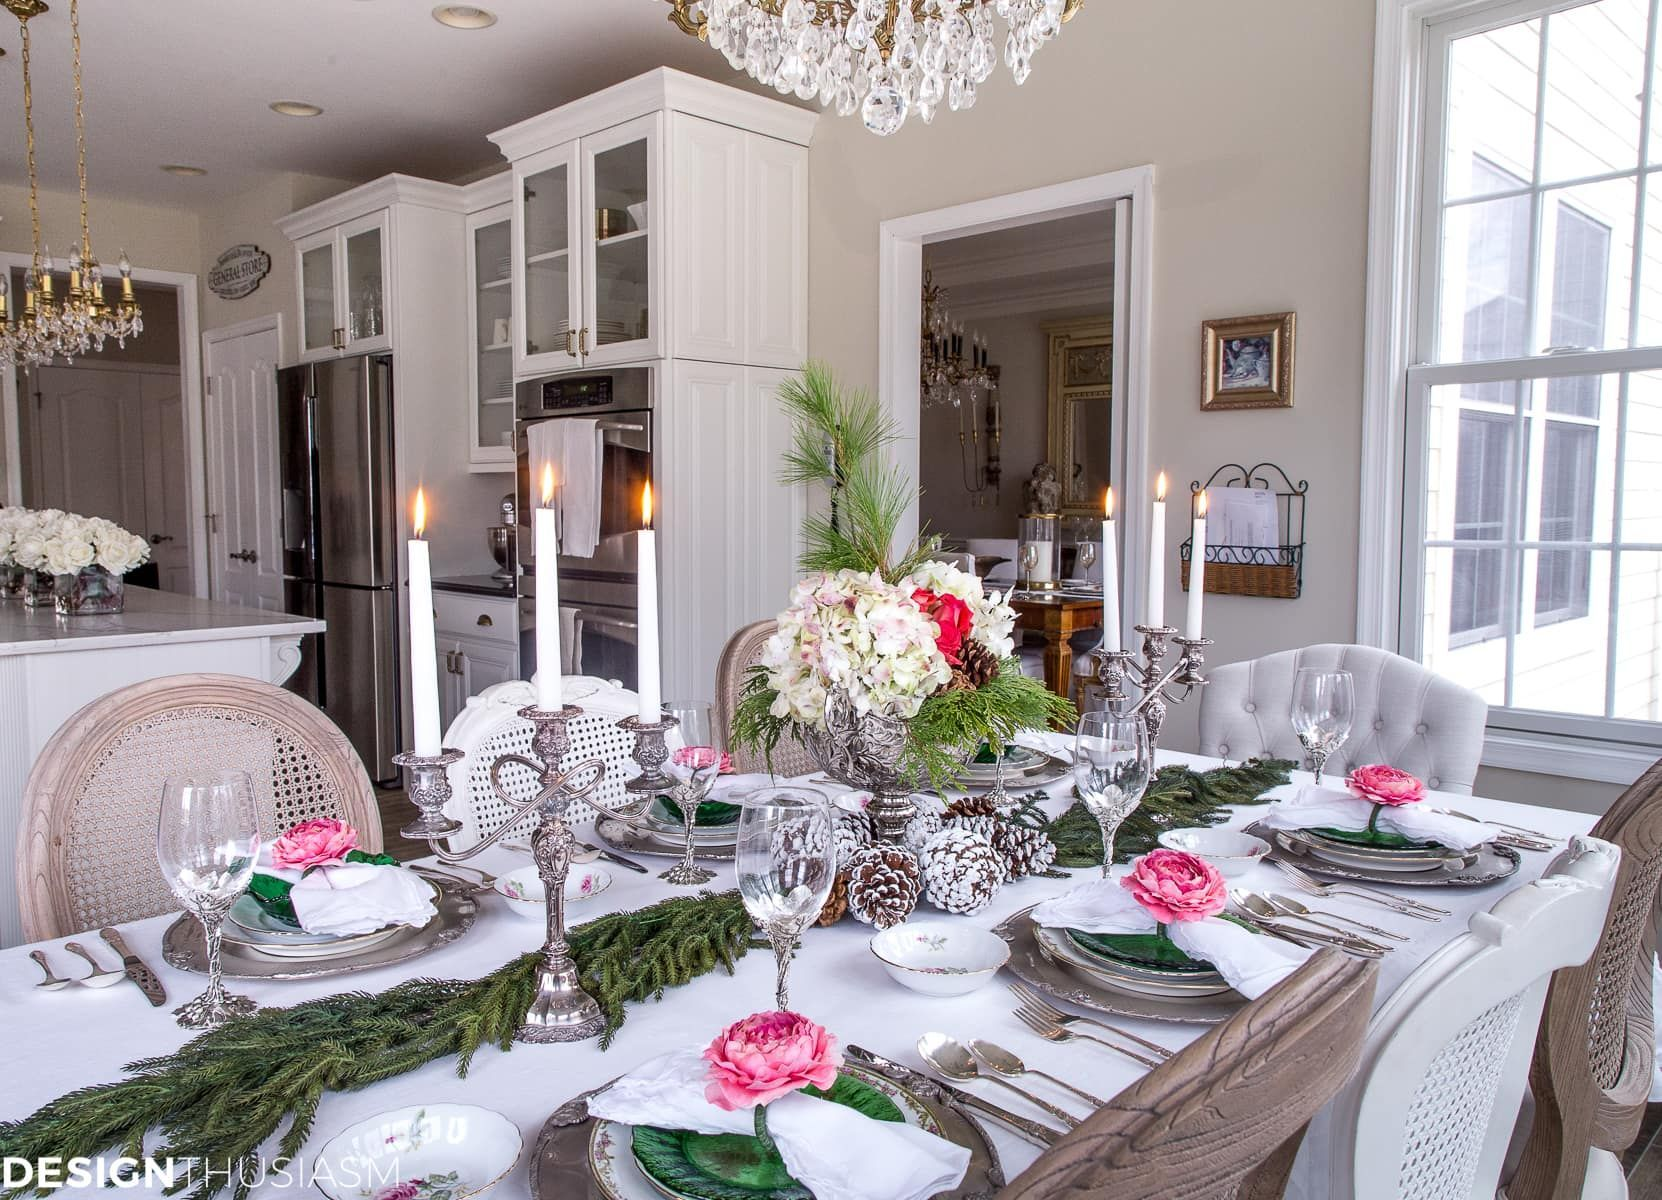 Christmas Table Settings | Don't have a dining room to entertain in? Here are 5 tips for creating elegant Christmas table settings when eating in the kitchen. -----